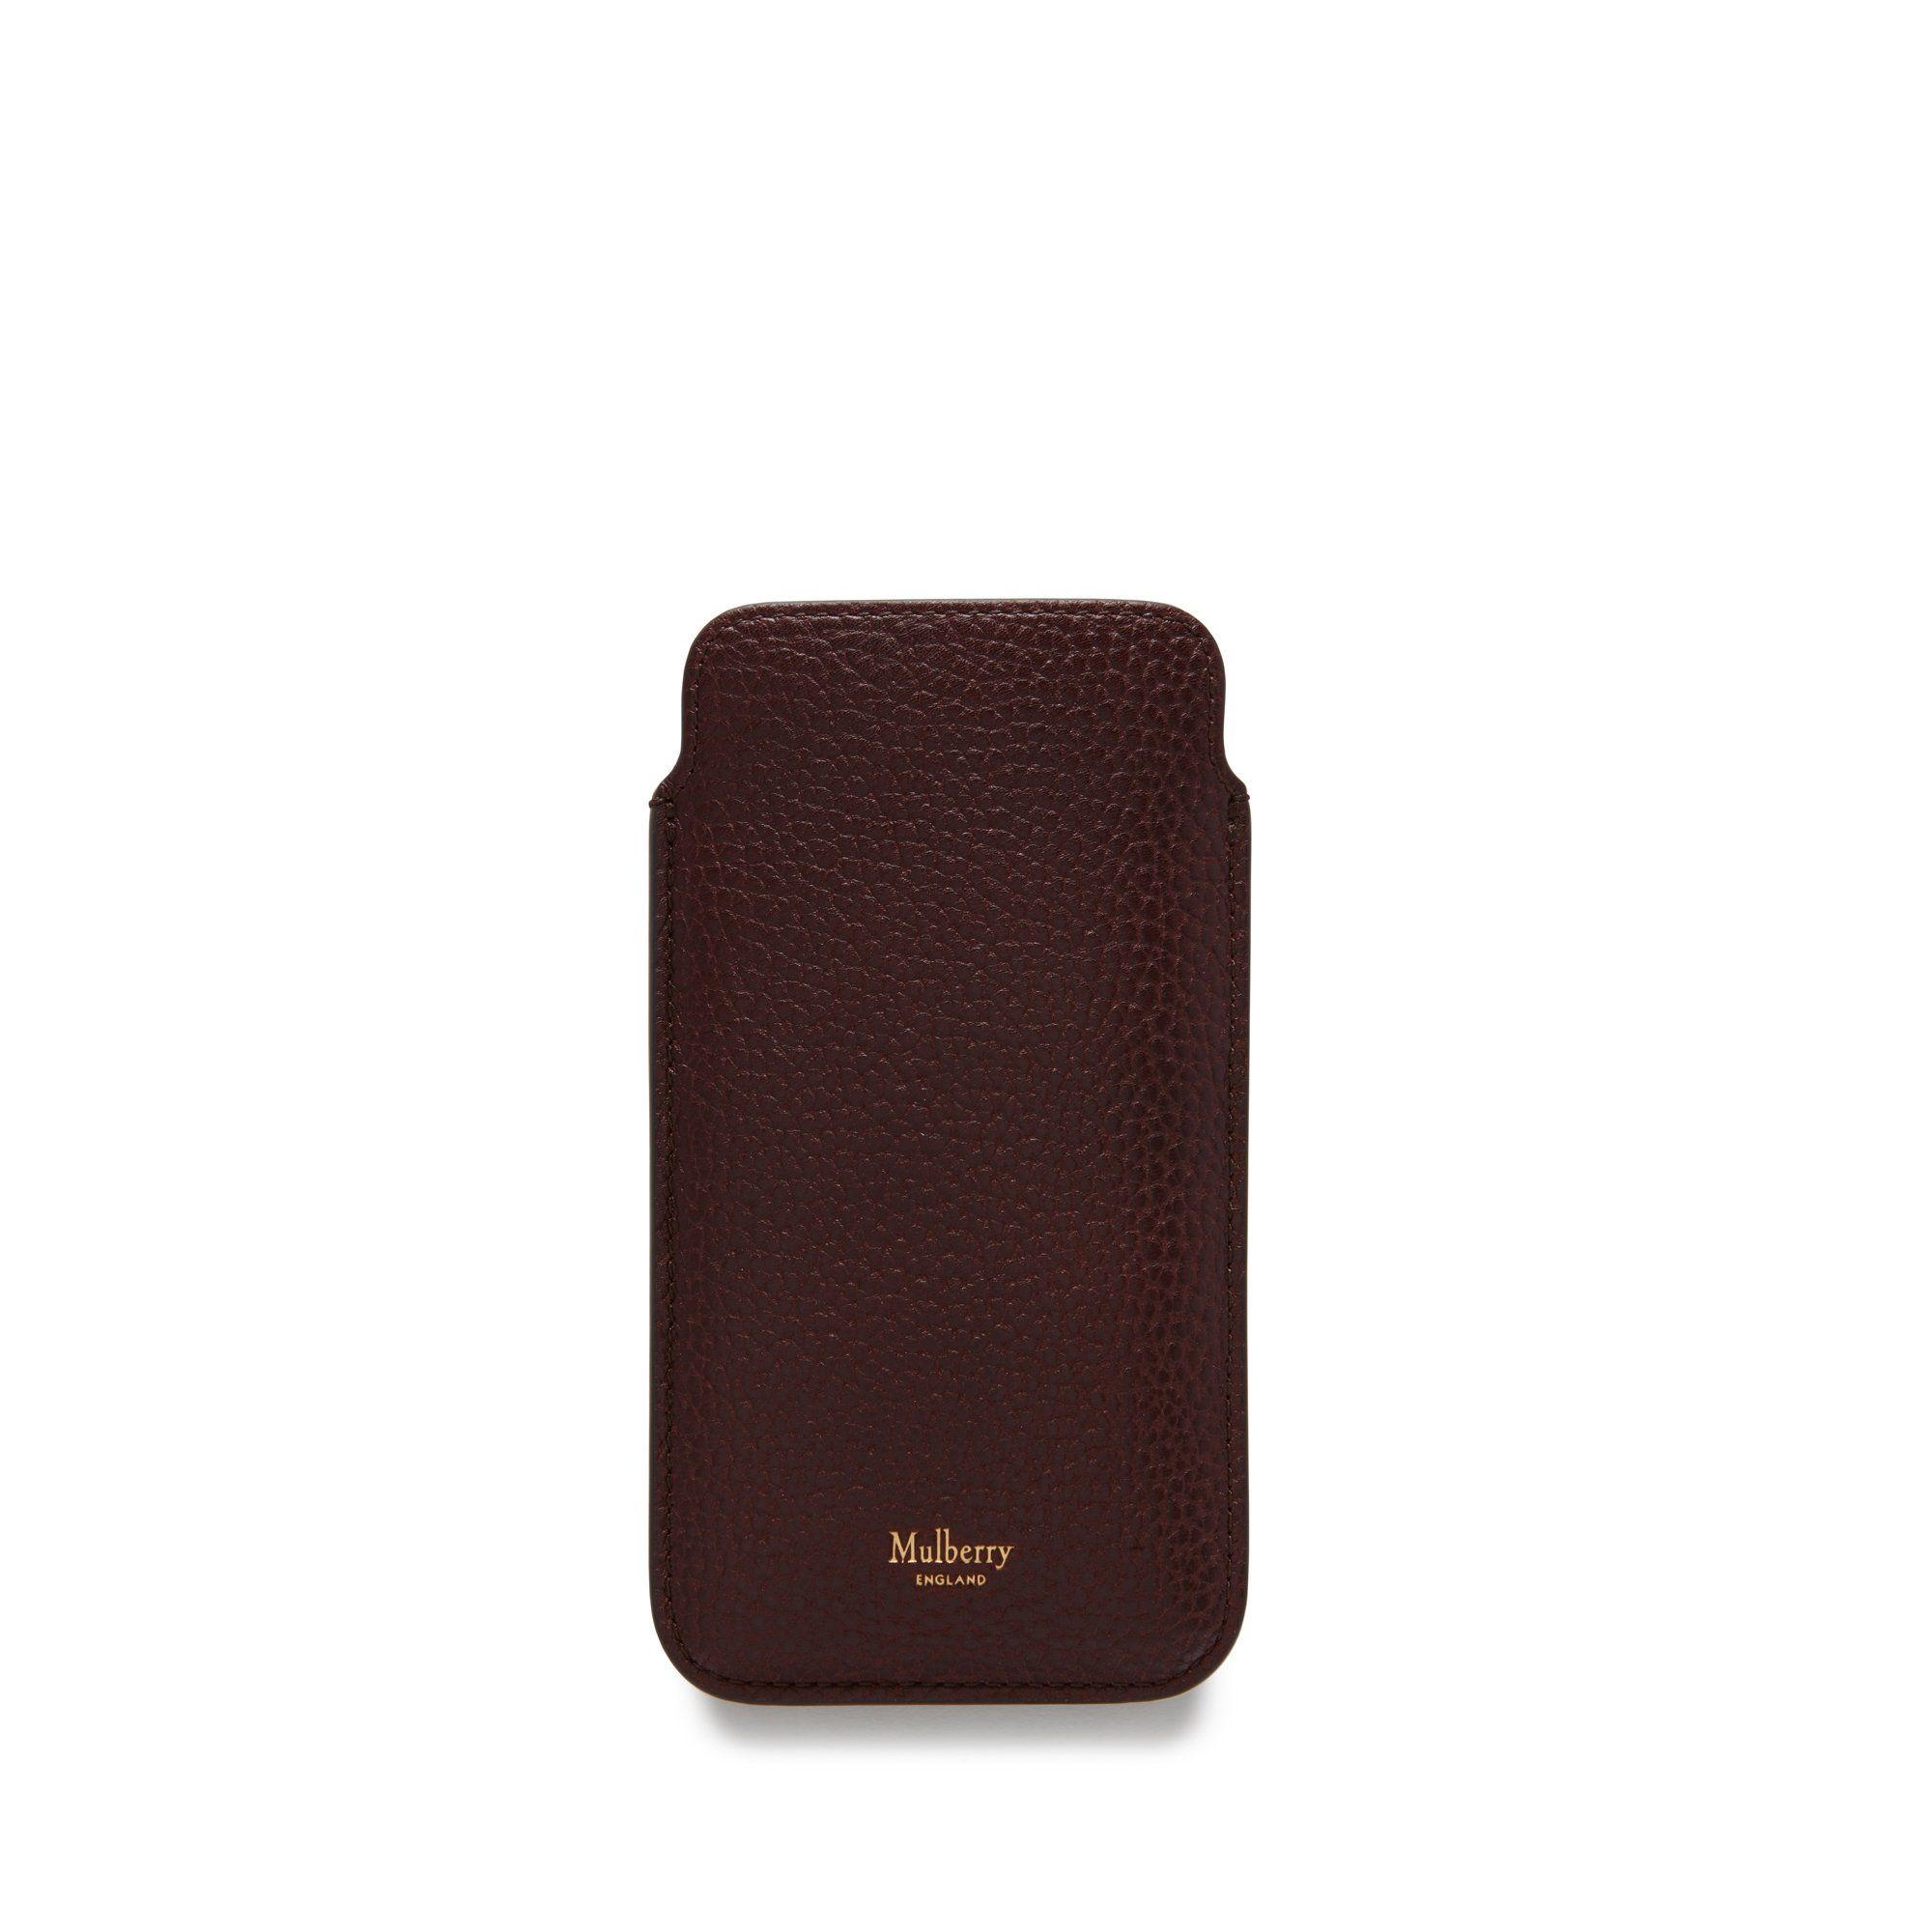 timeless design f71bb 41268 Technology | Small Leather Goods | Women | Mulberry